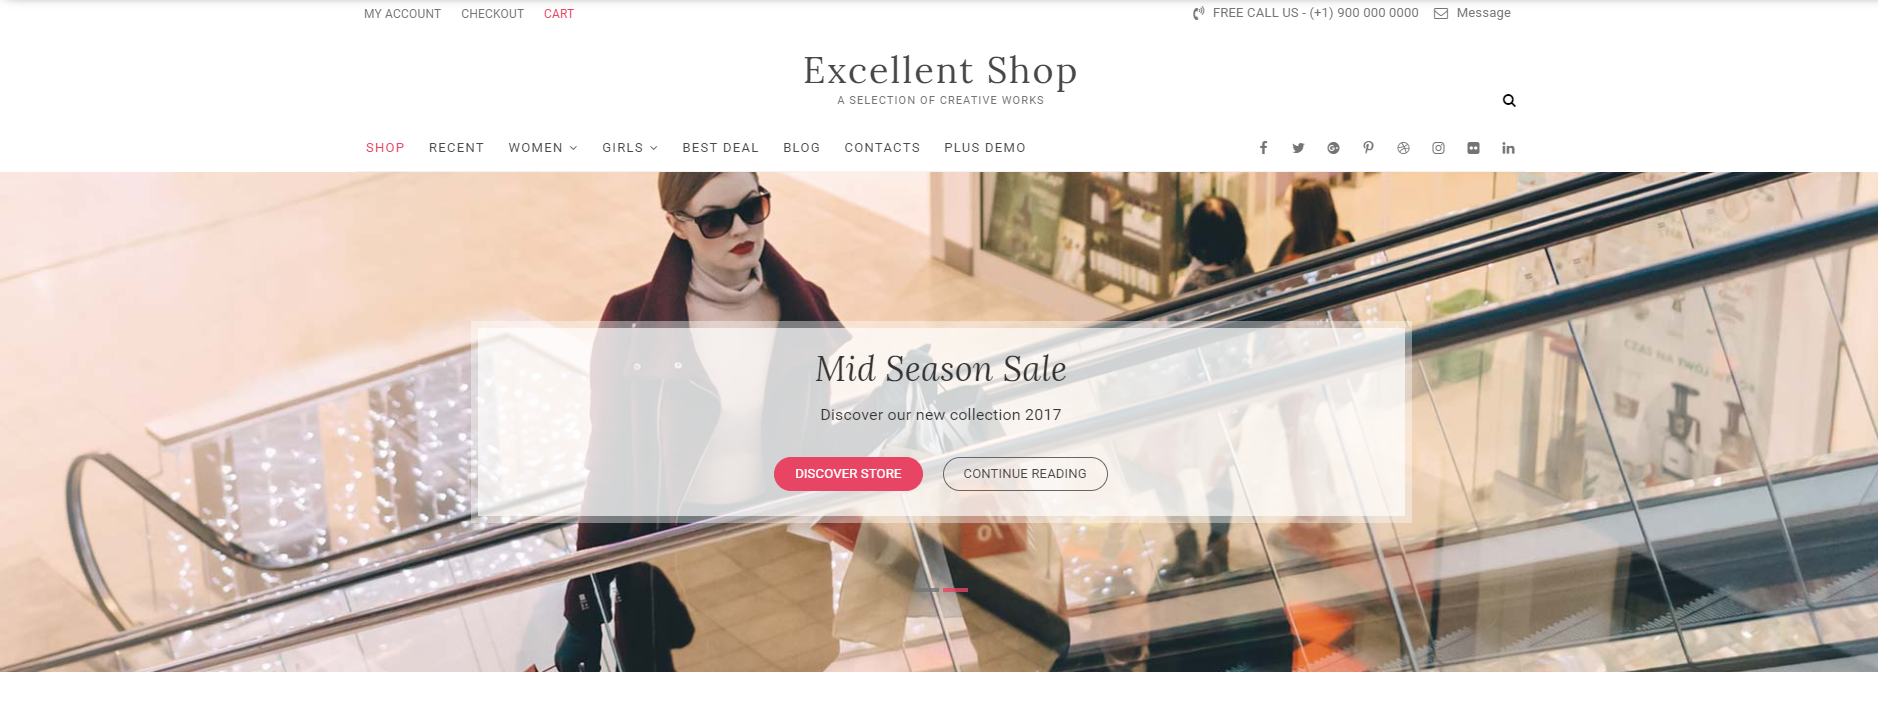 Lady Riding An Escalator   13 Best WordPress Themes For All Types Of Blogs & Websites